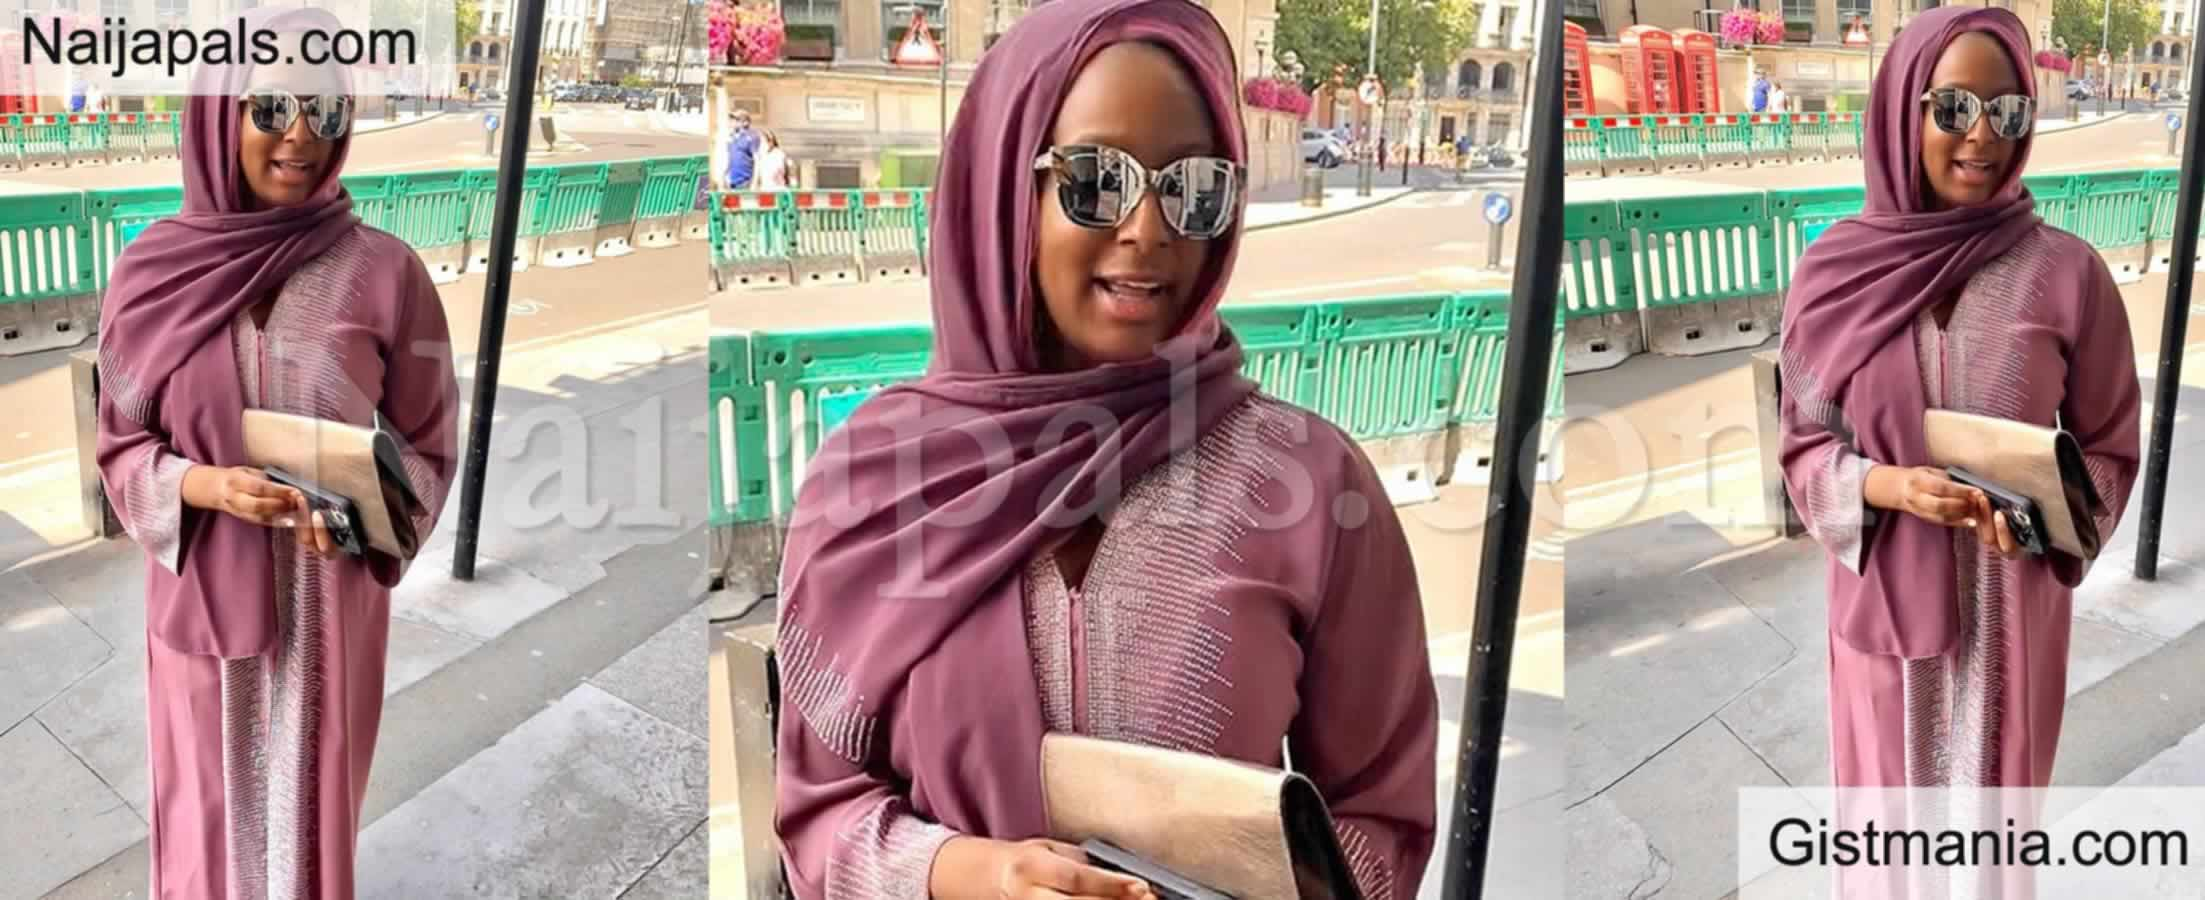 "<img alt='.' class='lazyload' data-src='https://img.gistmania.com/emot/thumbs_up.gif' /> <b>Fans Praise DJ Cuppy Over Muslim Outfit - 'Normalize Styling In less Revealing Clothes"" </b>"